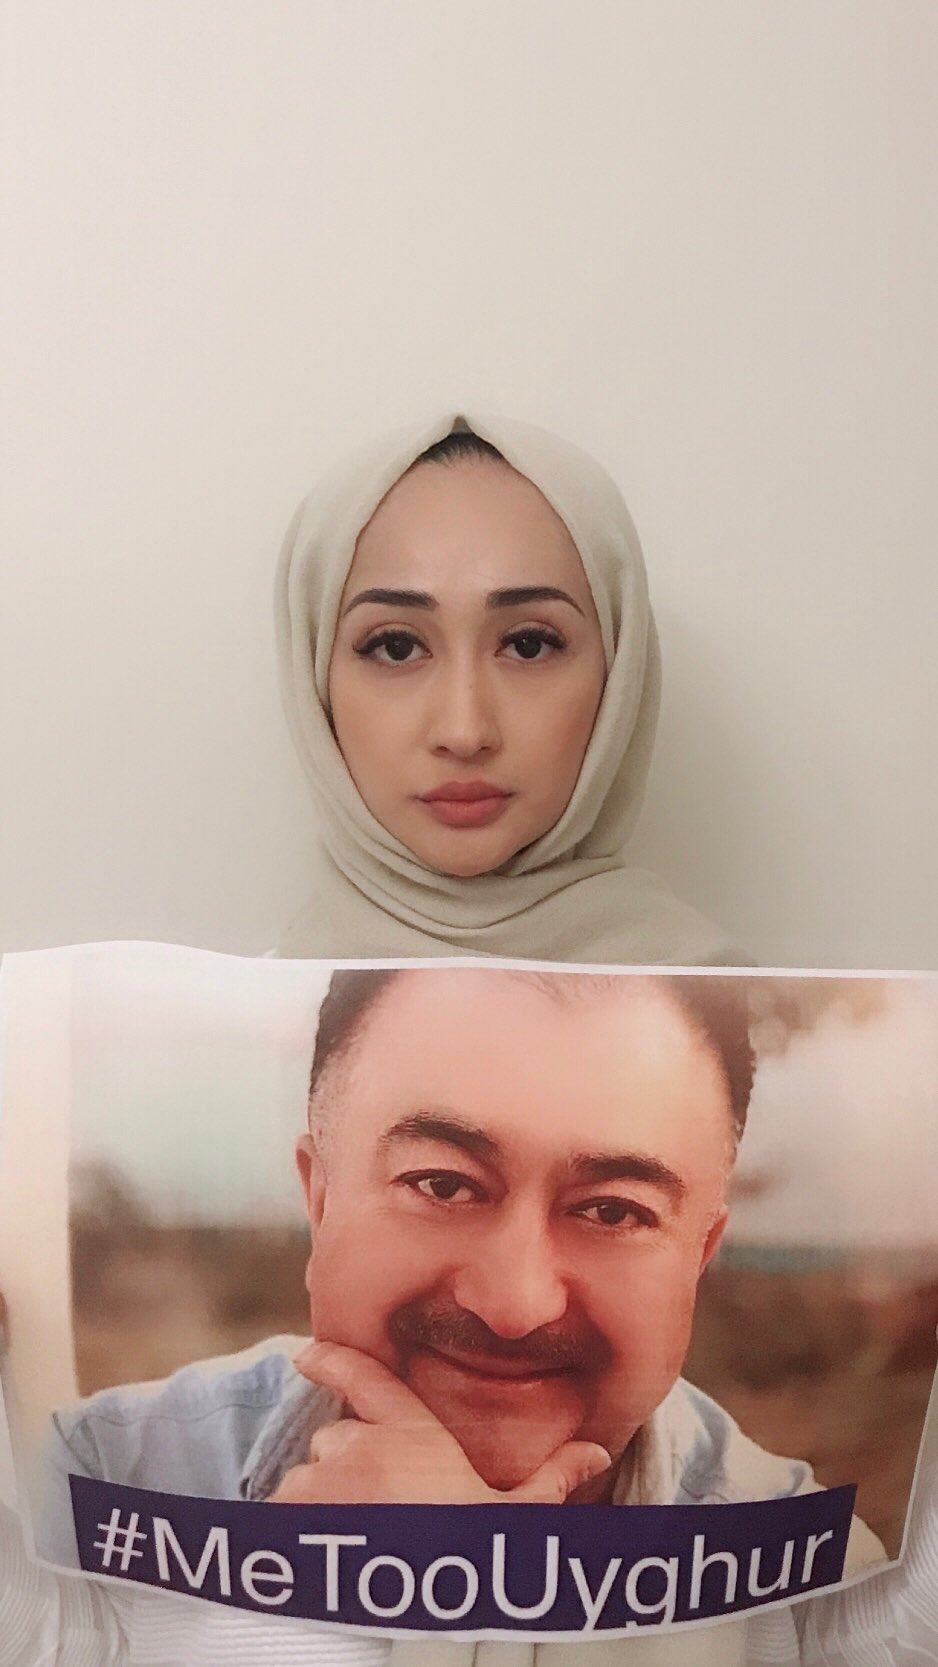 Daughter of famous Uyghur comedian is asking Chinese government to release her father